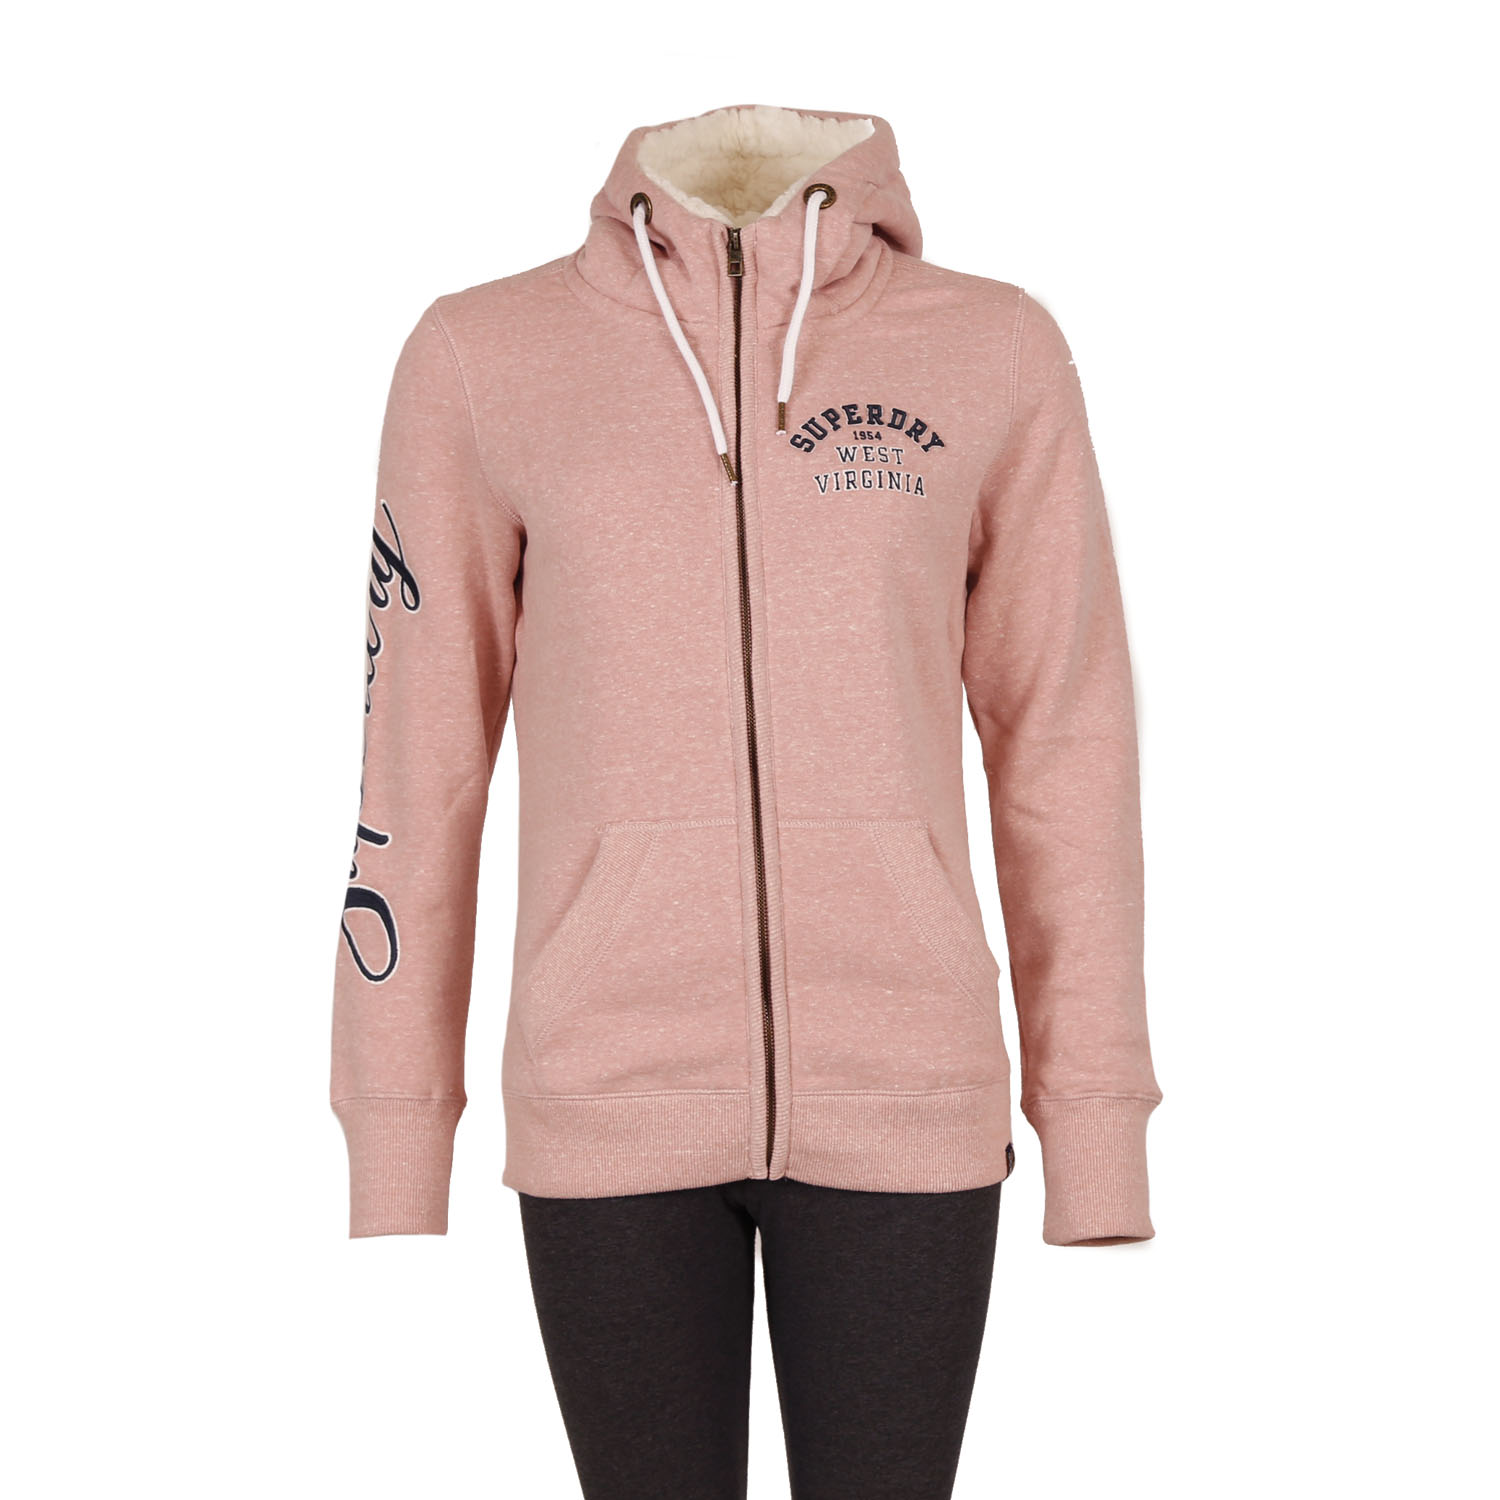 Superdry Aria applique Hoodie W ( G20002AR-WK6 ) ρούχα    γυναίκα   sweaters   hoodies   ζακέτες